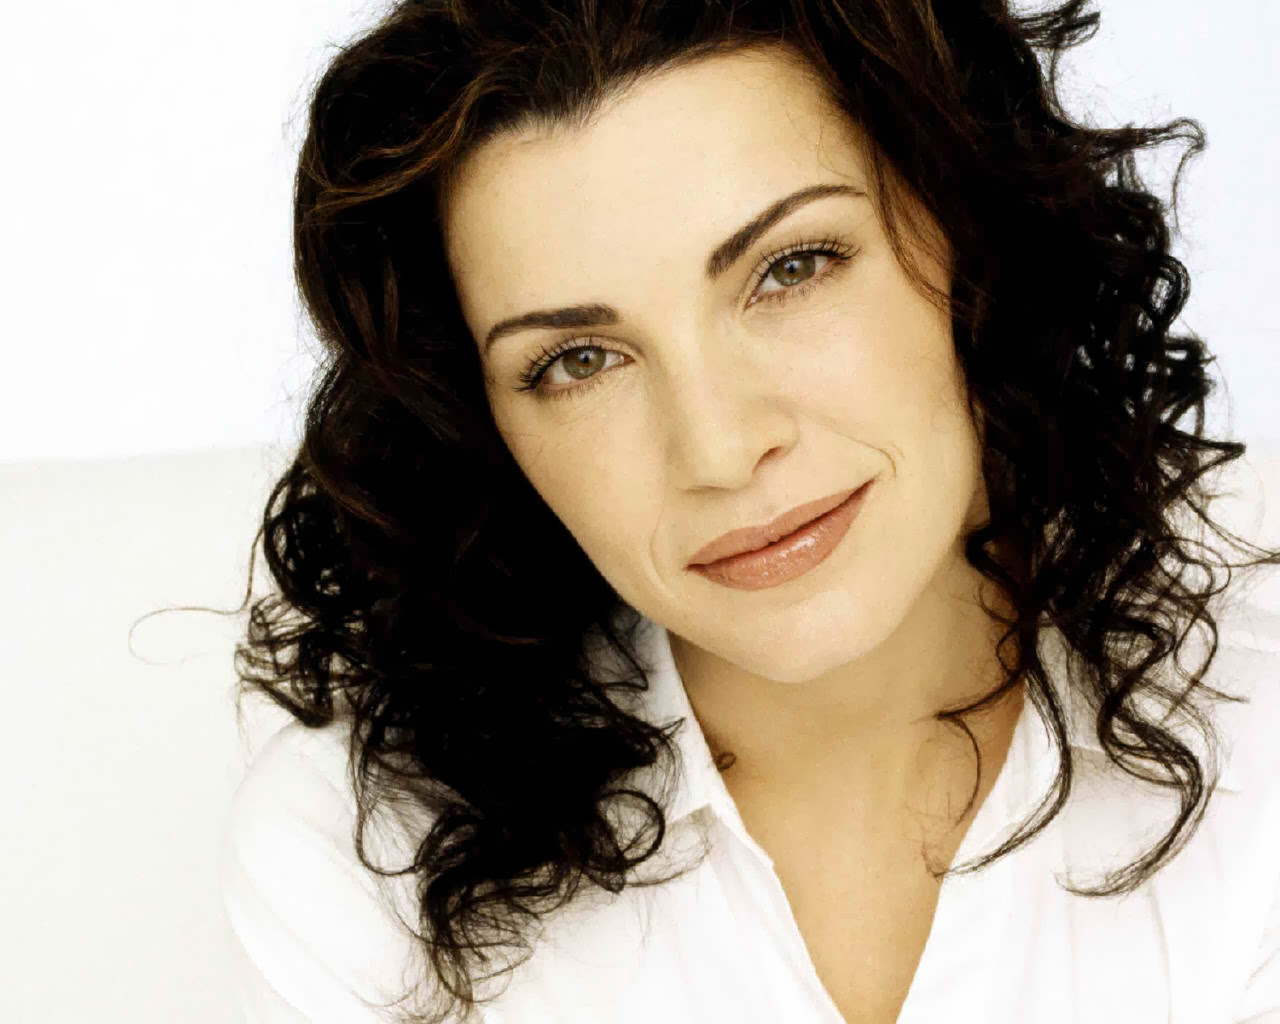 Julianna Margulies Quotes 50 Wallpapers: Chatter Busy: Julianna Margulies Quotes